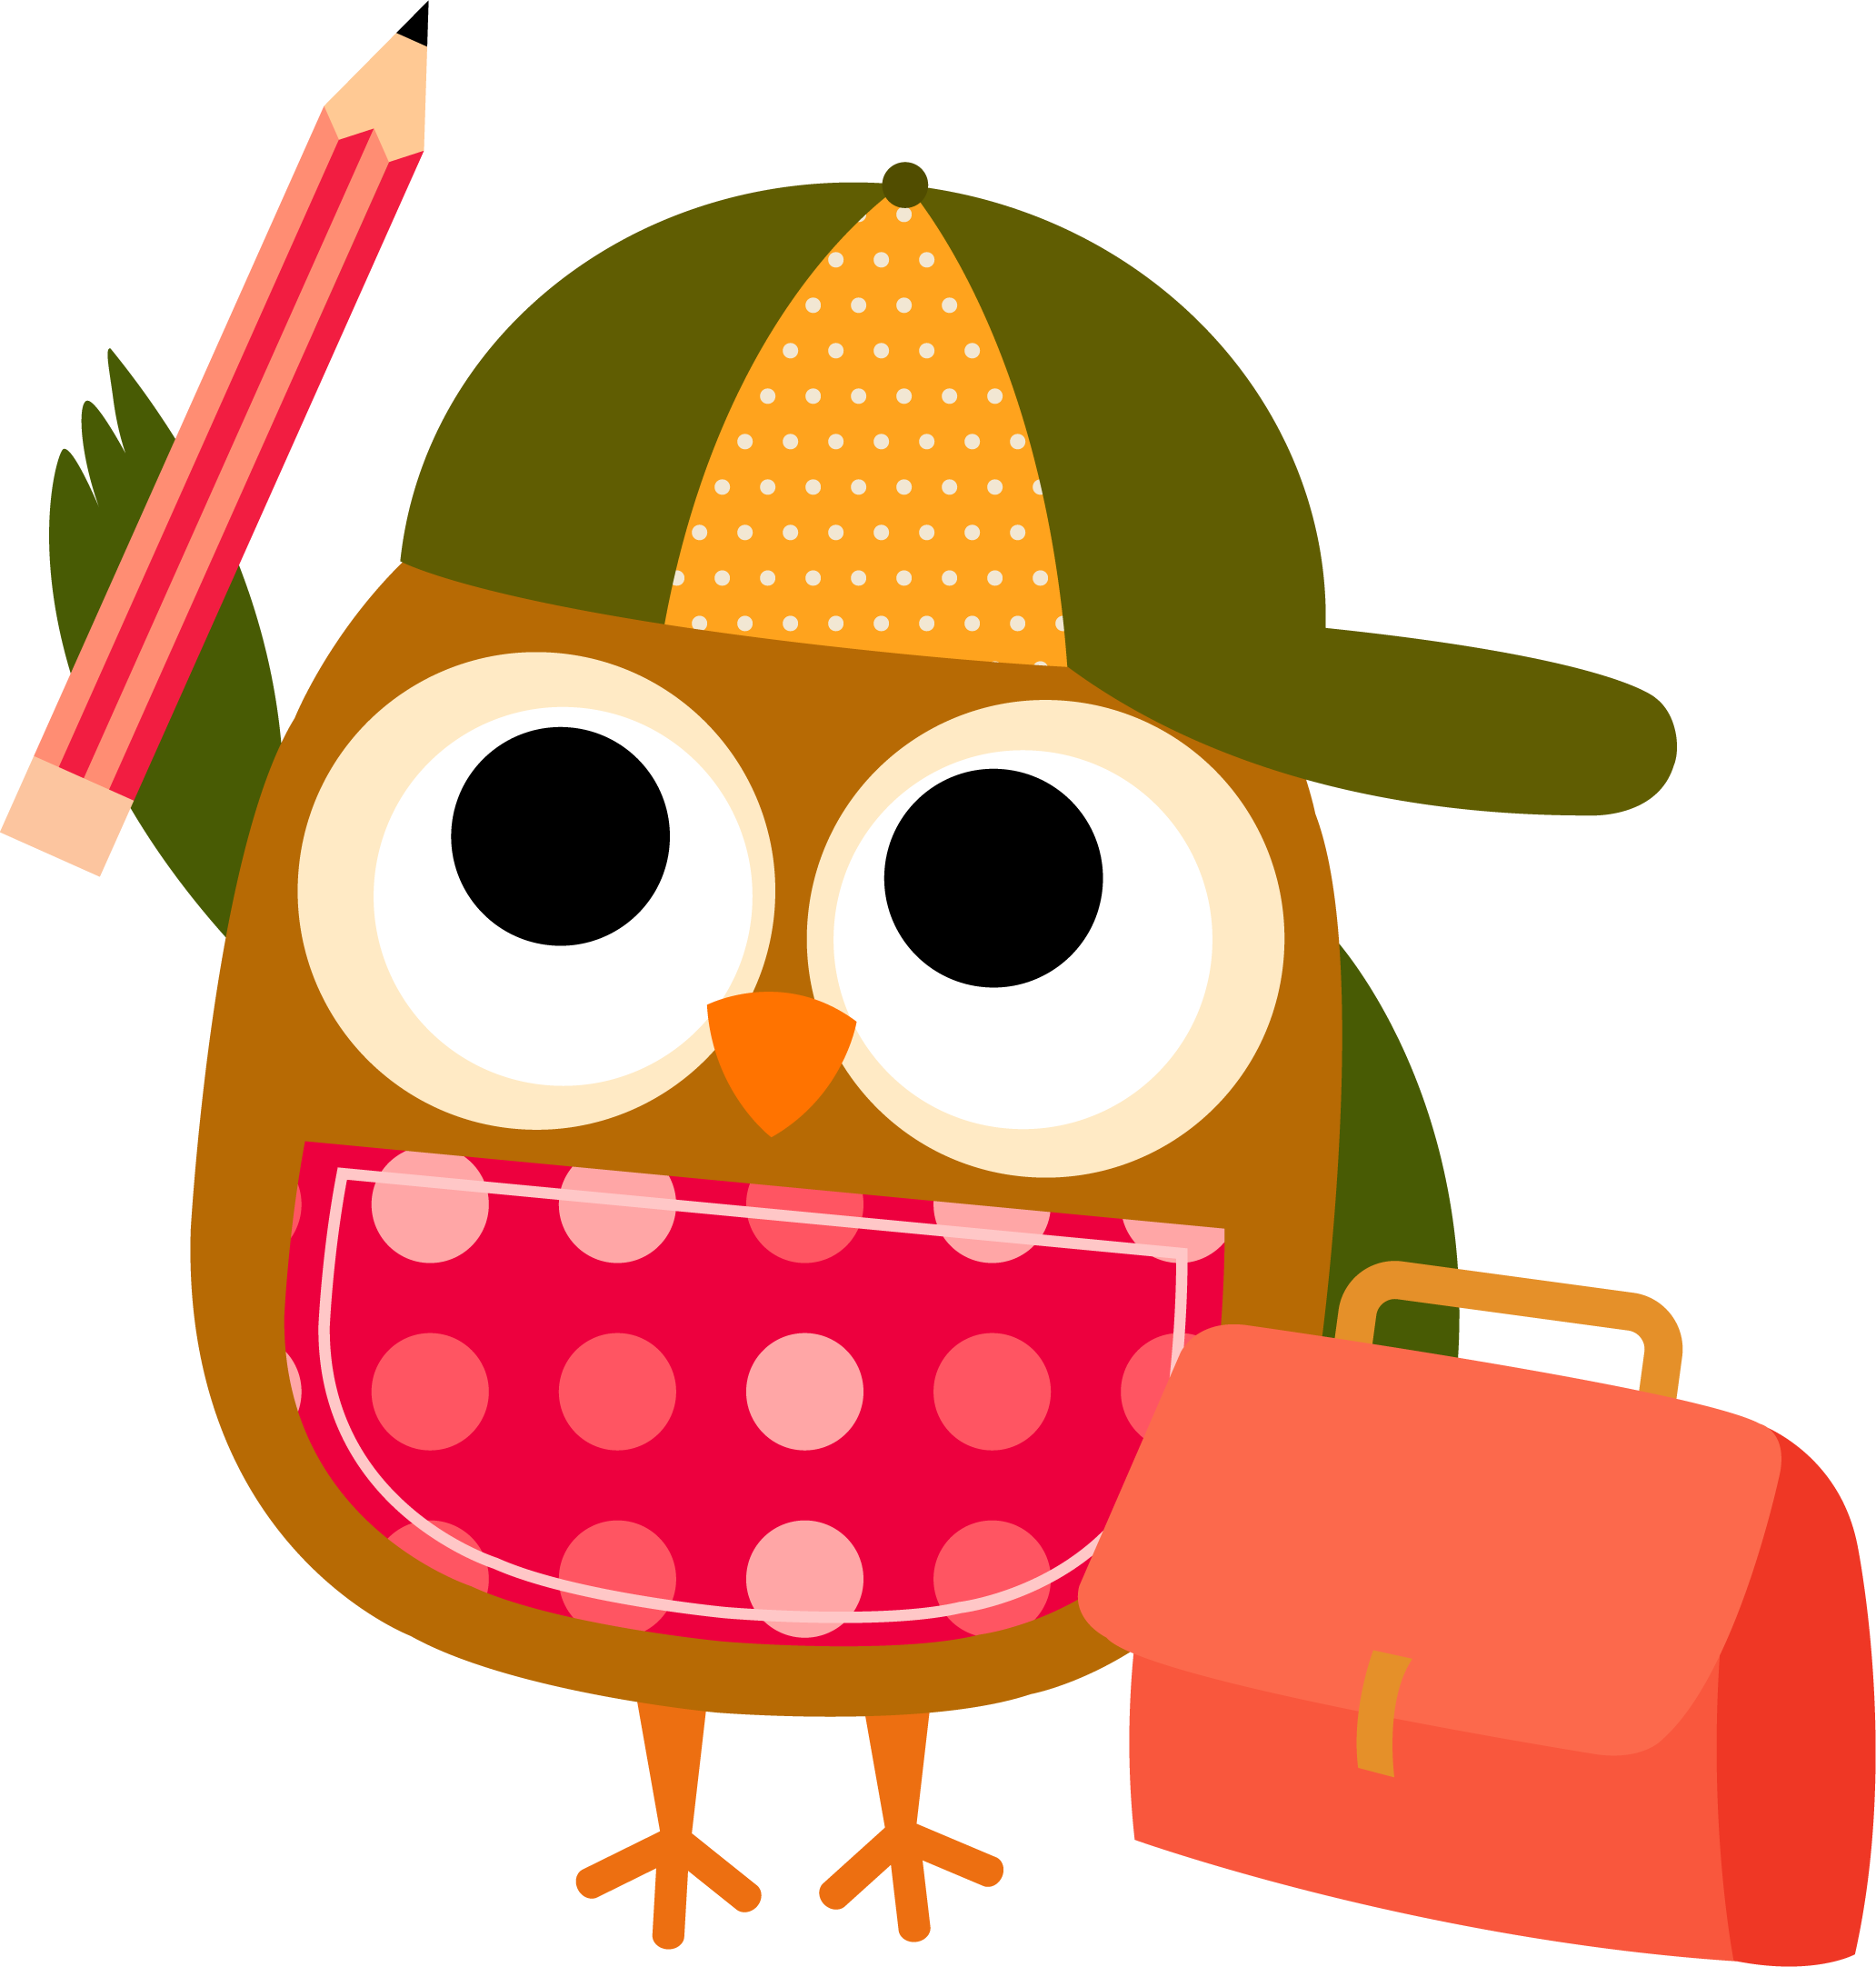 Clipart of owl with apple png library stock January 2014 | Date Archive | The W.I.S.E. Owl- Where Instruction ... png library stock